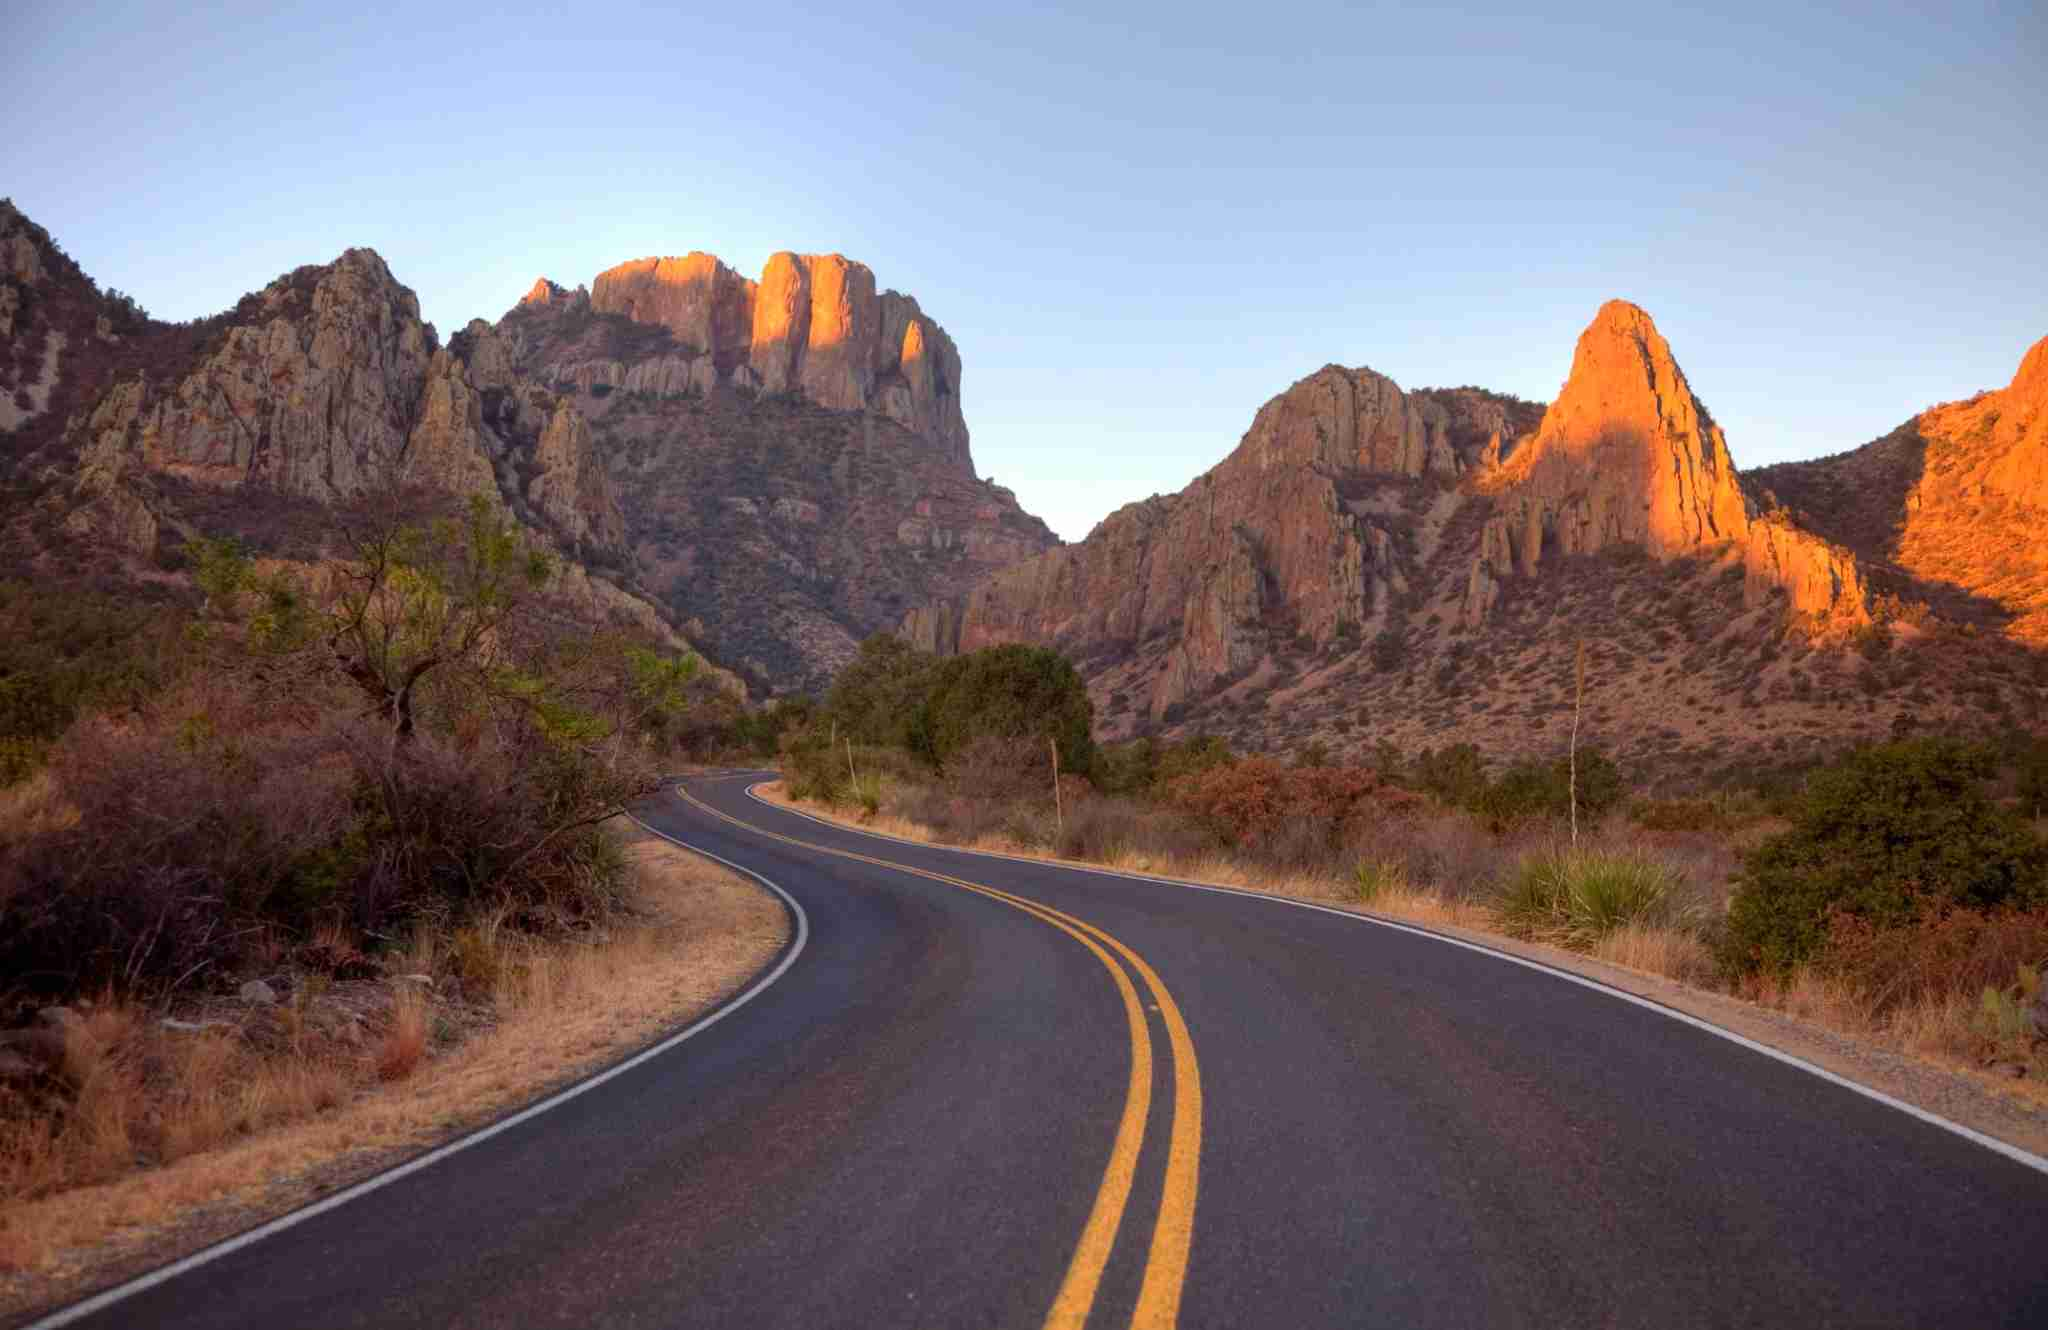 Driving through Big Bend National Park. (Photo by DenisTangneyJr / Getty Images)